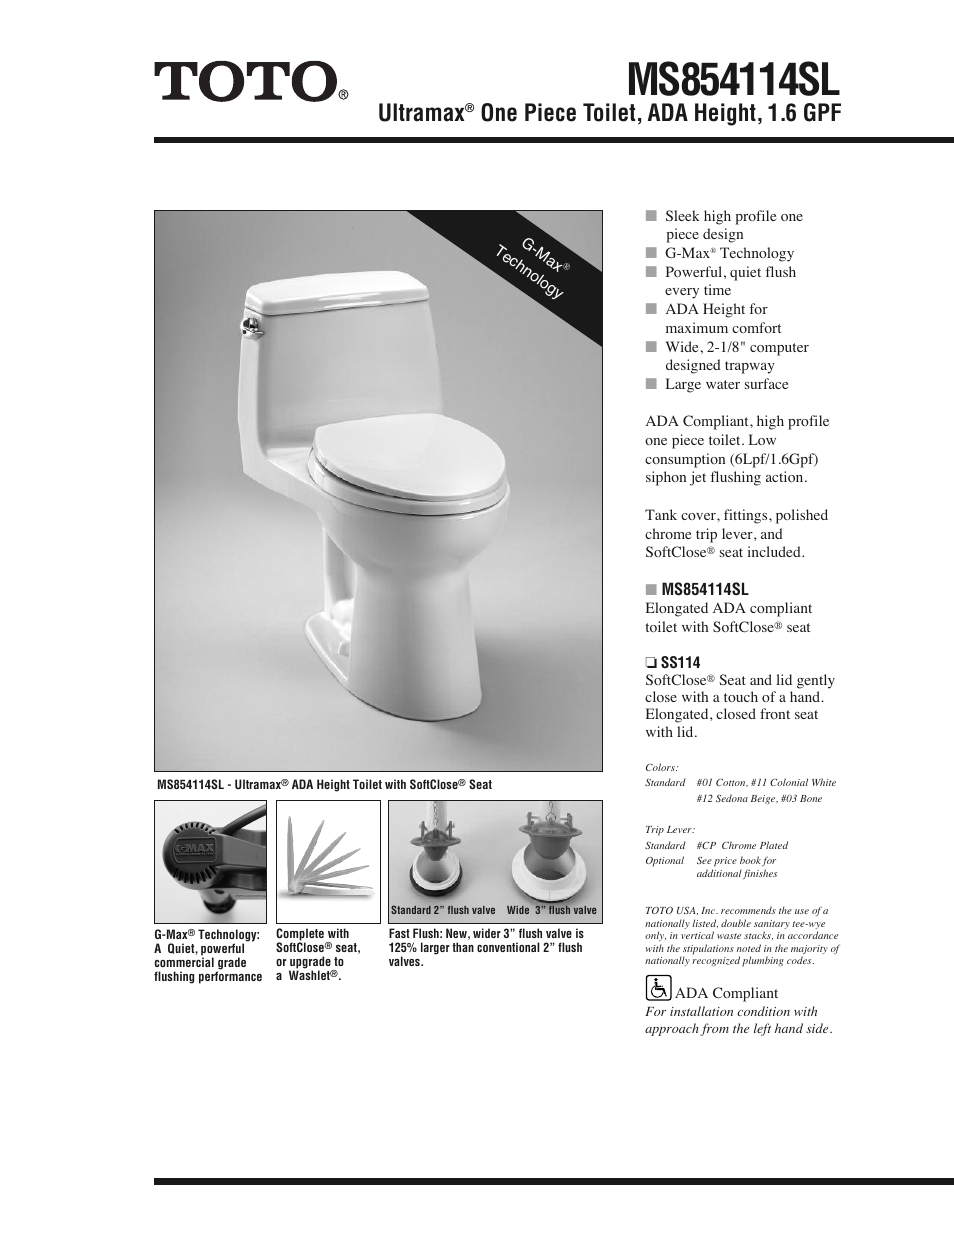 Factory Direct Hardware Toto MS854114SL Ultramax User Manual | 2 pages